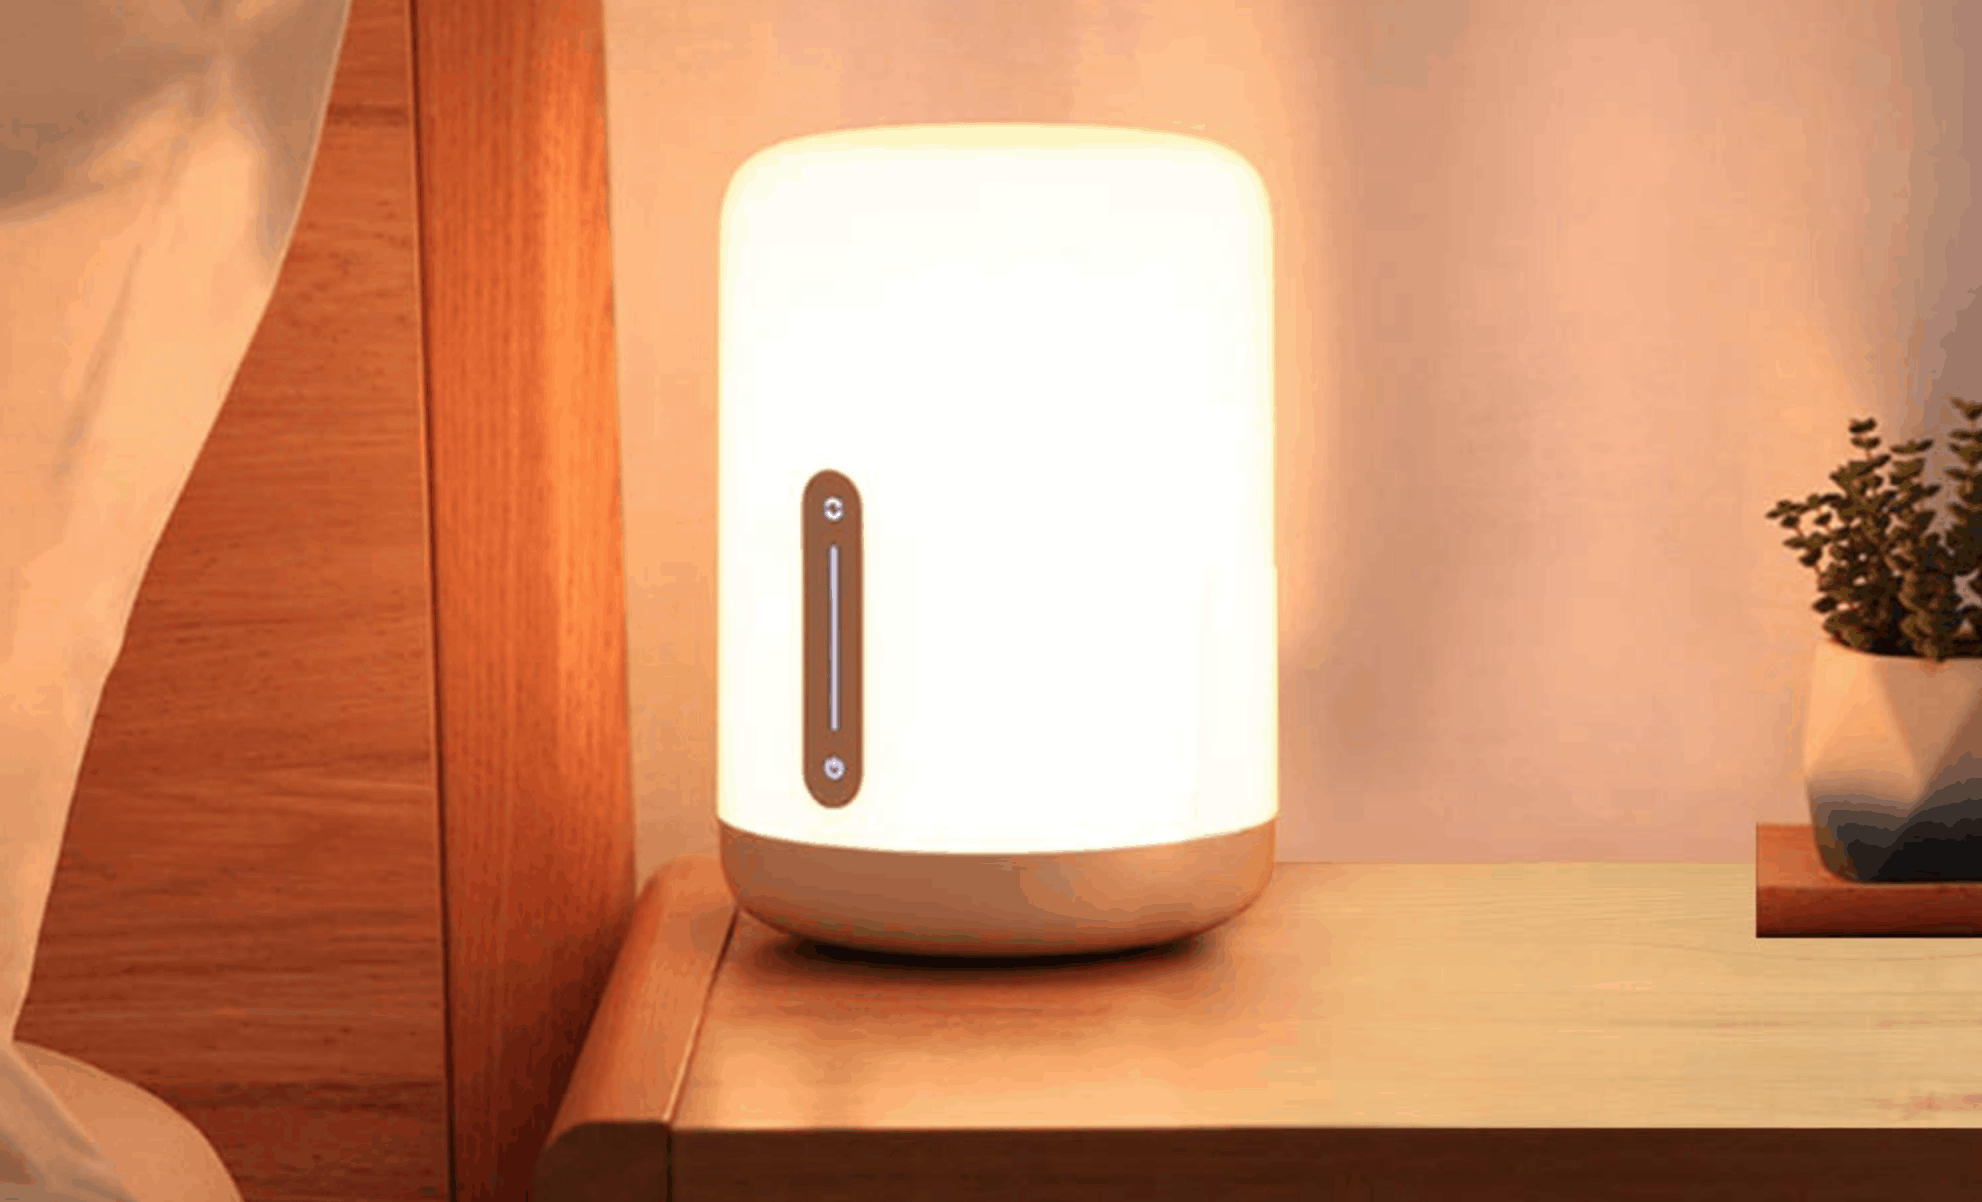 Yeelight HomeKit